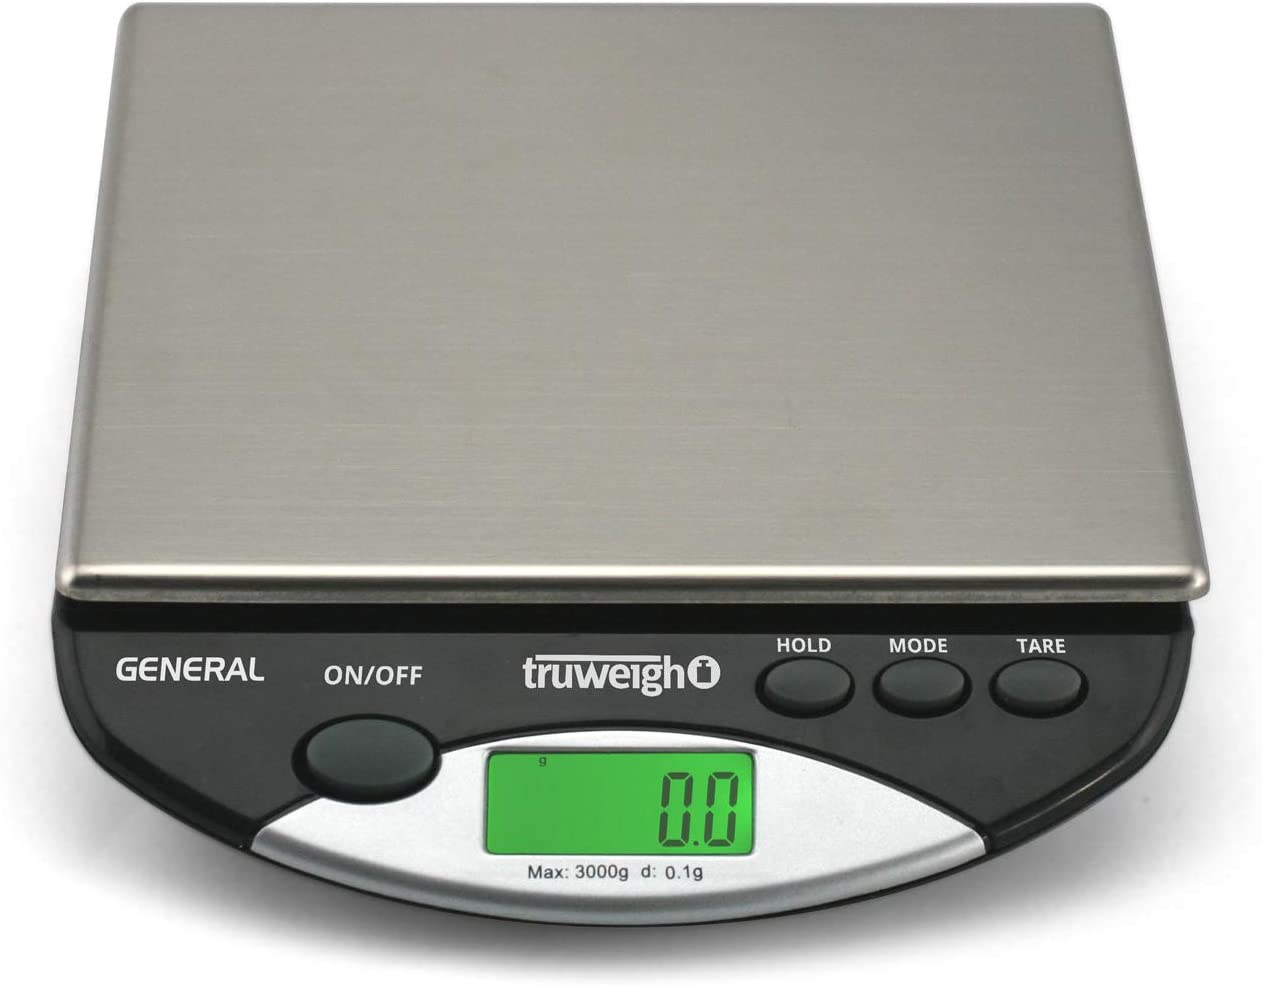 Truweigh - GENERAL Compact Bench Scale - 3000g x 0.1g - Black and Long Lasting Portable Grams Scale for Kitchen Scale, Food Scale and Postal Scale Use